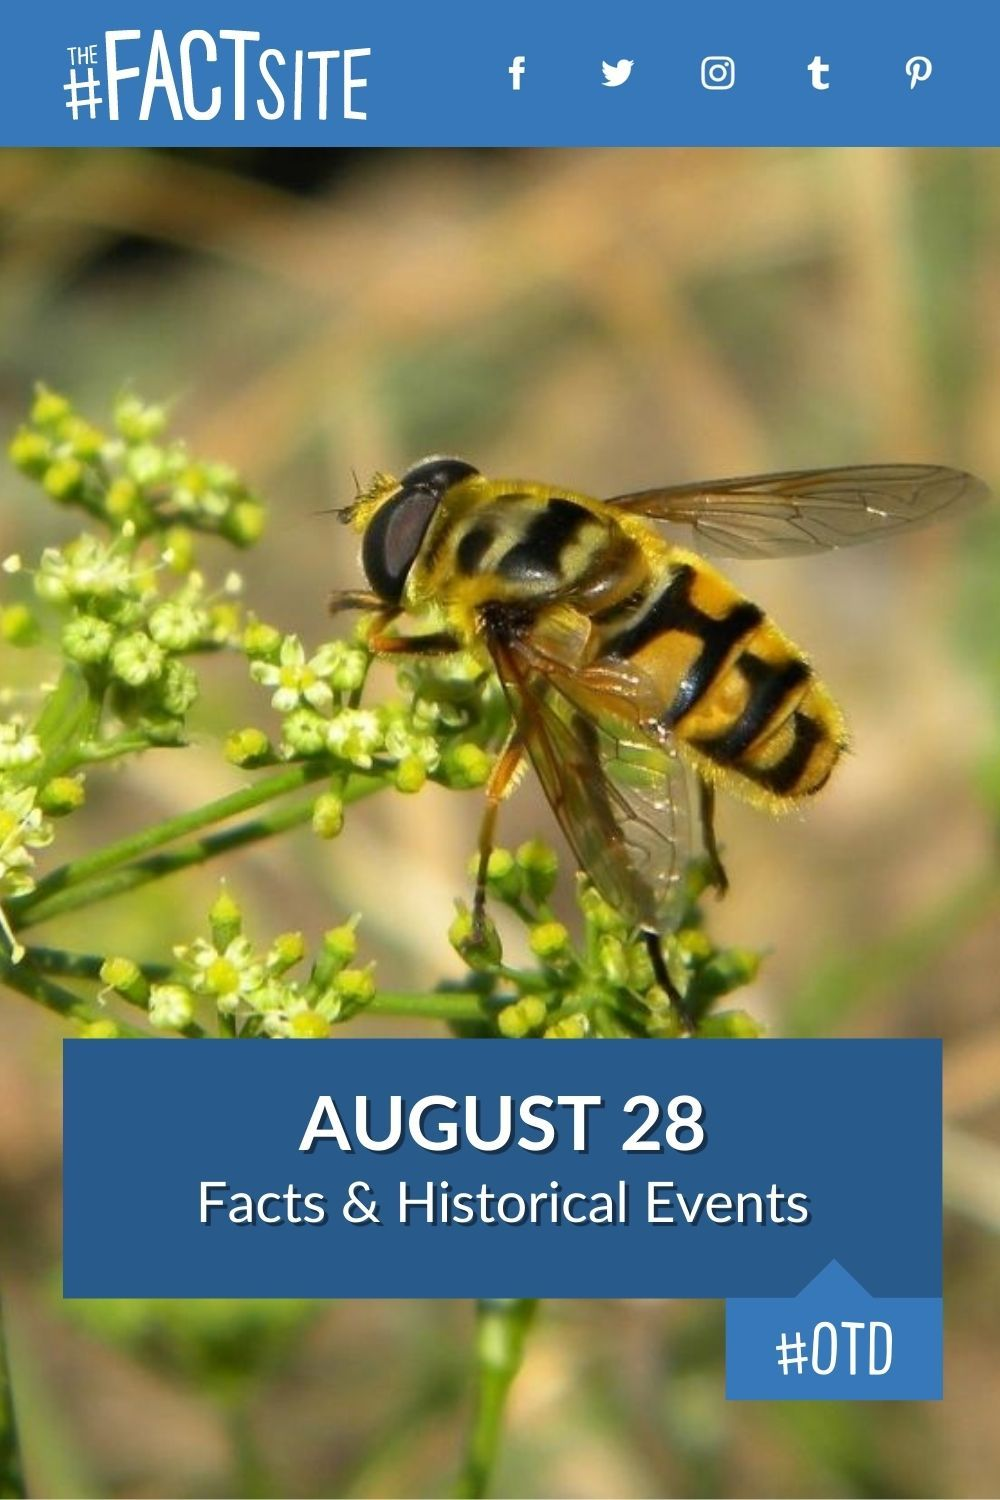 Facts & Historic Events That Happened on August 28